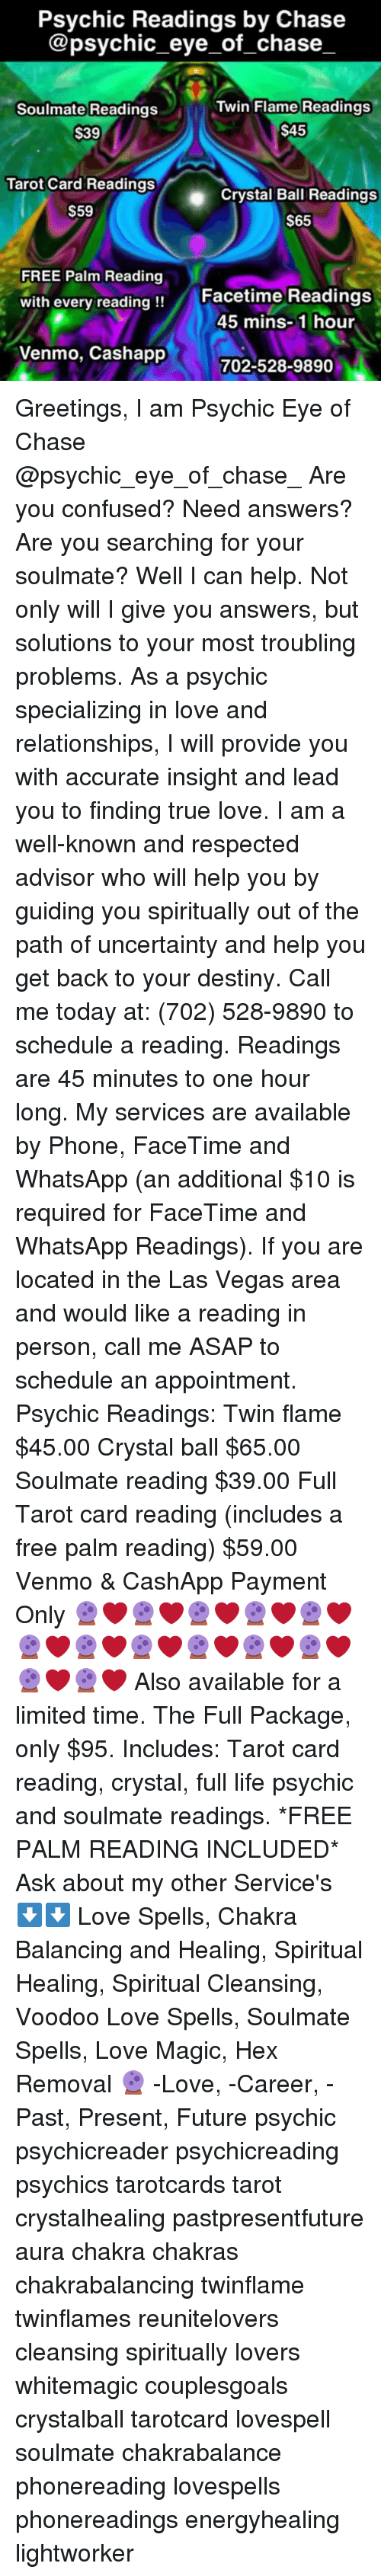 Confused, Destiny, and Facetime: Psychic Readings by Chase  @psychic_eye_of_chase  Twin Flame Readings  Soulmate Readings  $39  $45  Tarot Card Readings  Crystal Ball Readings  S65  S59  FREE Palm Reading  with every reading!!  Facetime Readings  45 mins-1 hour  Venmo, Cashapp  702-528-9890 Greetings, I am Psychic Eye of Chase @psychic_eye_of_chase_ Are you confused? Need answers? Are you searching for your soulmate? Well I can help. Not only will I give you answers, but solutions to your most troubling problems. As a psychic specializing in love and relationships, I will provide you with accurate insight and lead you to finding true love. I am a well-known and respected advisor who will help you by guiding you spiritually out of the path of uncertainty and help you get back to your destiny. Call me today at: (702) 528-9890 to schedule a reading. Readings are 45 minutes to one hour long. My services are available by Phone, FaceTime and WhatsApp (an additional $10 is required for FaceTime and WhatsApp Readings). If you are located in the Las Vegas area and would like a reading in person, call me ASAP to schedule an appointment. Psychic Readings: Twin flame $45.00 Crystal ball $65.00 Soulmate reading $39.00 Full Tarot card reading (includes a free palm reading) $59.00 Venmo & CashApp Payment Only 🔮❤🔮❤🔮❤🔮❤🔮❤🔮❤🔮❤🔮❤🔮❤🔮❤🔮❤🔮❤🔮❤ Also available for a limited time. The Full Package, only $95. Includes: Tarot card reading, crystal, full life psychic and soulmate readings. *FREE PALM READING INCLUDED* Ask about my other Service's ⬇⬇ Love Spells, Chakra Balancing and Healing, Spiritual Healing, Spiritual Cleansing, Voodoo Love Spells, Soulmate Spells, Love Magic, Hex Removal 🔮 -Love, -Career, -Past, Present, Future psychic psychicreader psychicreading psychics tarotcards tarot crystalhealing pastpresentfuture aura chakra chakras chakrabalancing twinflame twinflames reunitelovers cleansing spiritually lovers whitemagic couplesgoals crystalball tarotcard lovespell soulmate chakrab